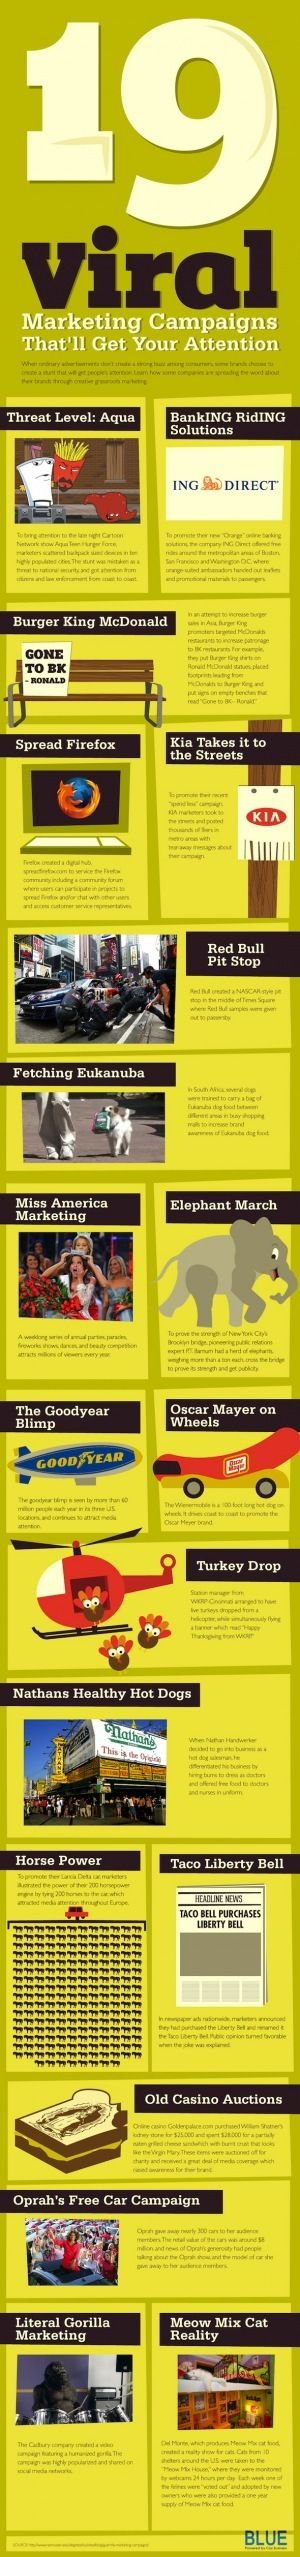 19 Viral Marketing Campaigns That'll Get Your Attention#infographic: Social Network, Socialmediamarket Infografik, Campaigns Infographic, Attention Infographic, Small Business, Social Media, Viral Marketing, Marketing Campaigns, 19 Viral